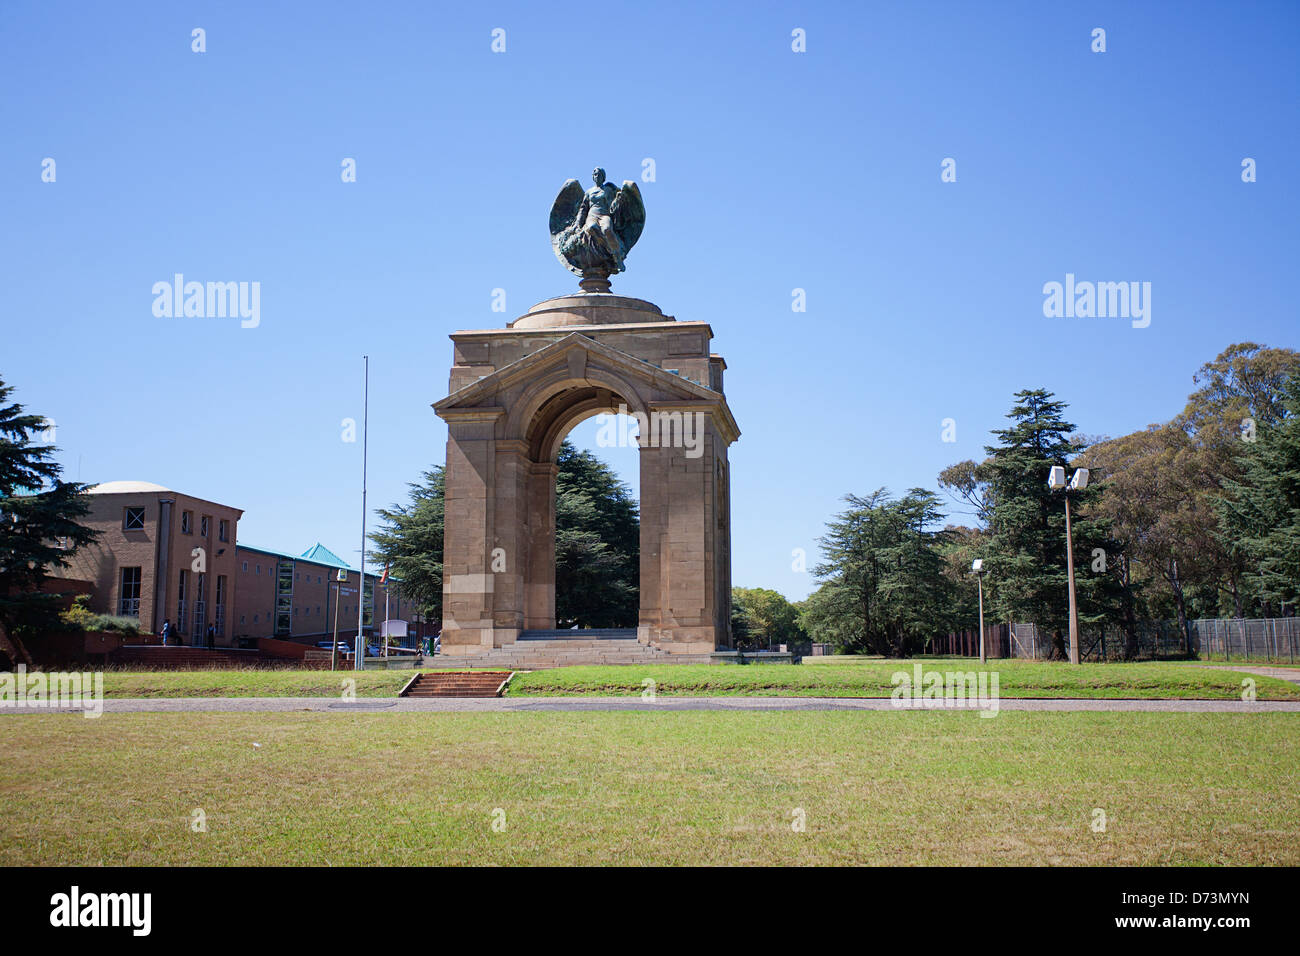 The Rand Regiments Memorial renamed the Boer War Memorial situated at the Ditsong National Museum of Military History - Stock Image